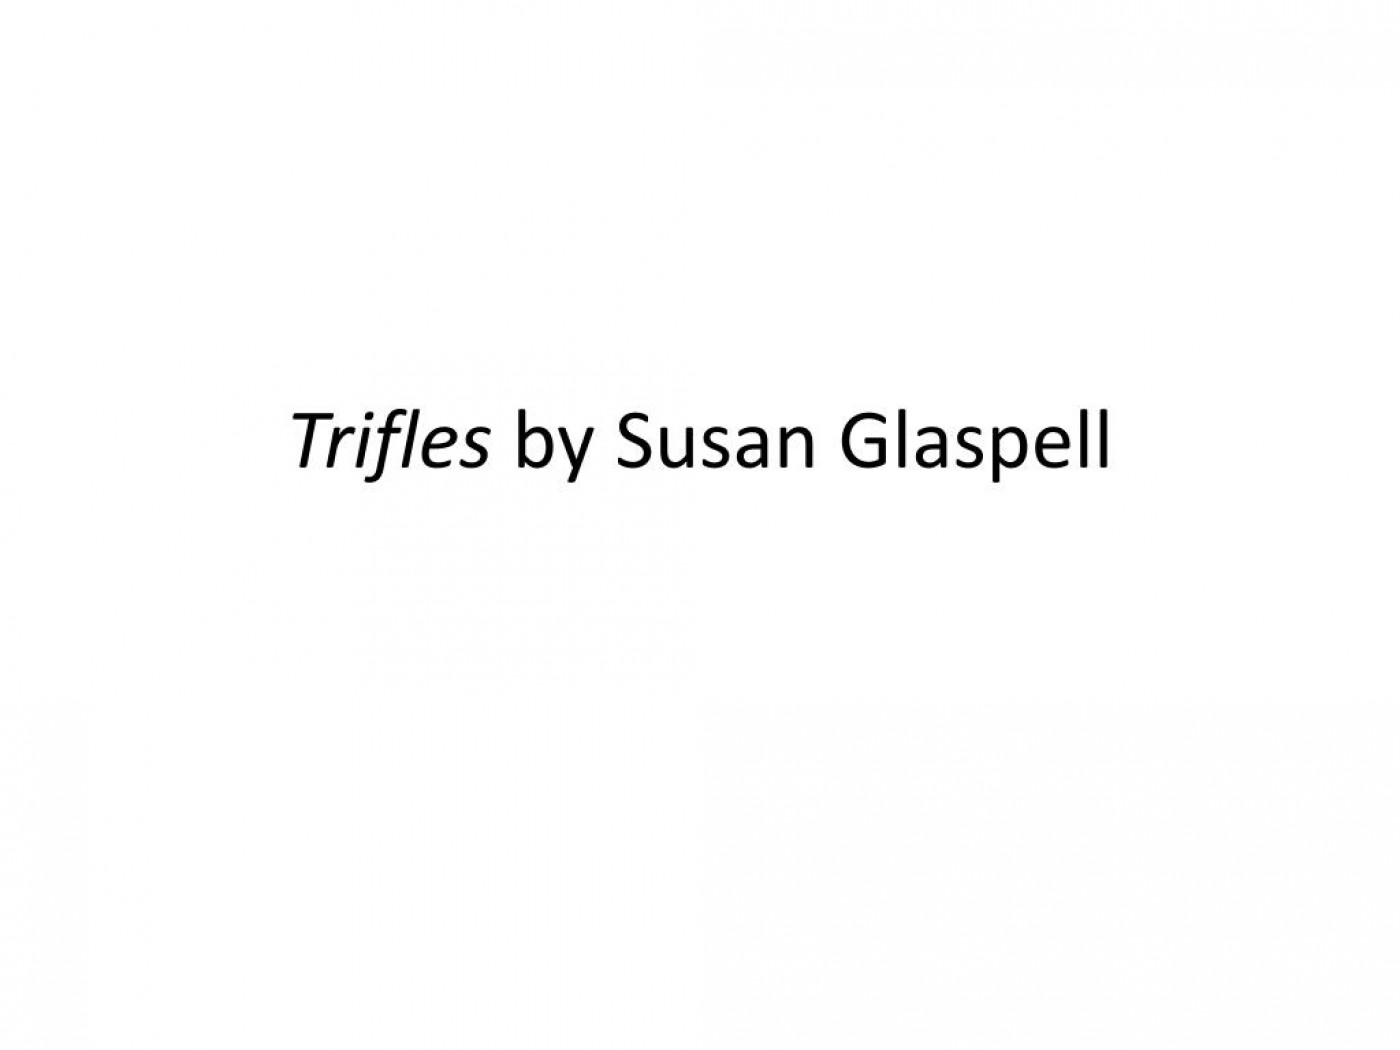 015 Trifles By Susan Glaspell L Essay Formidable Topics Feminism 1400